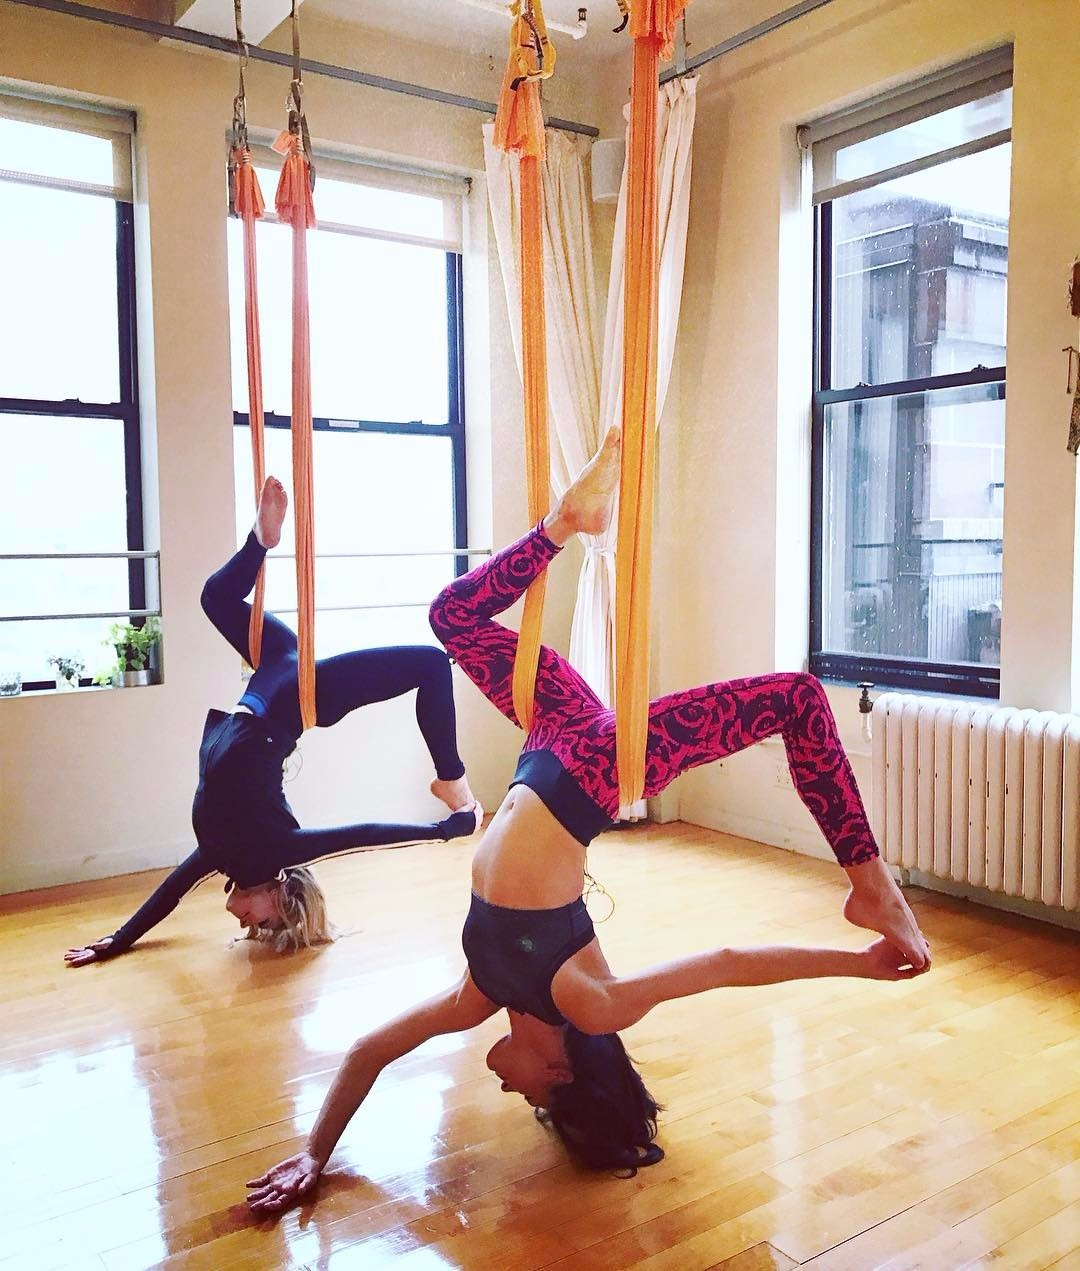 Raina Seitel performing aerial fitness workouts for her episode in New York Live.